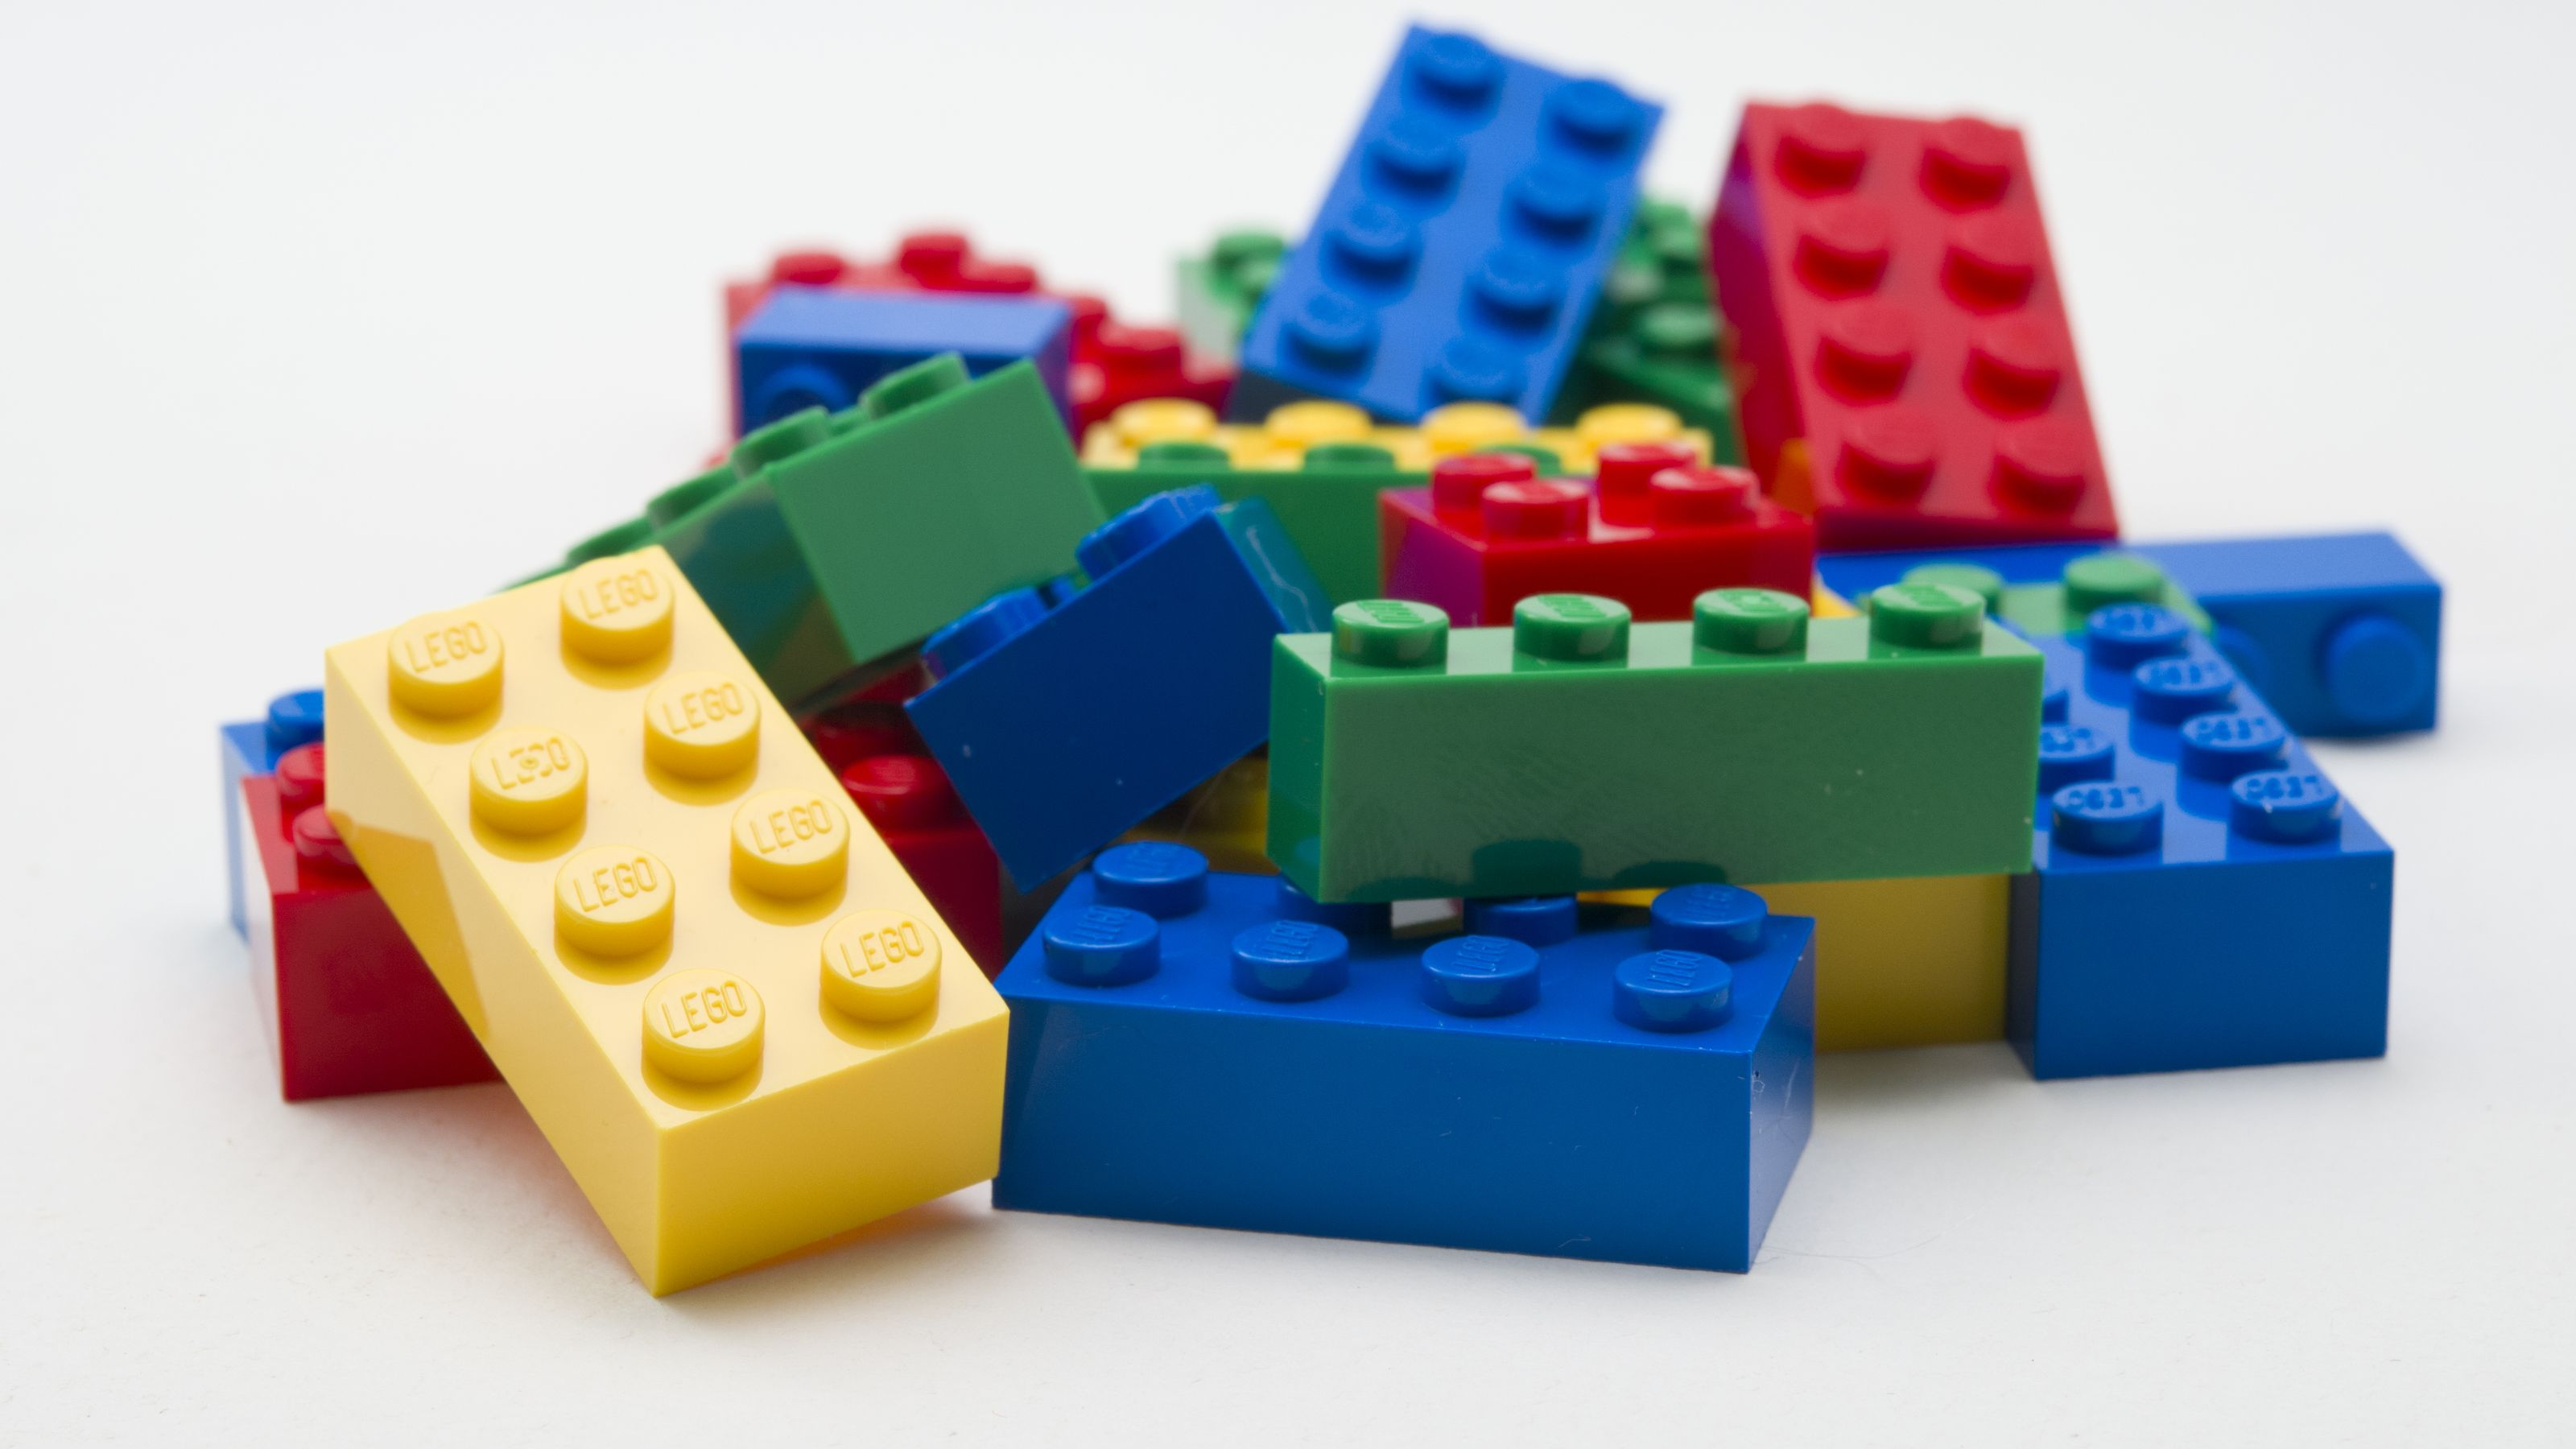 A stack of Lego blocks.